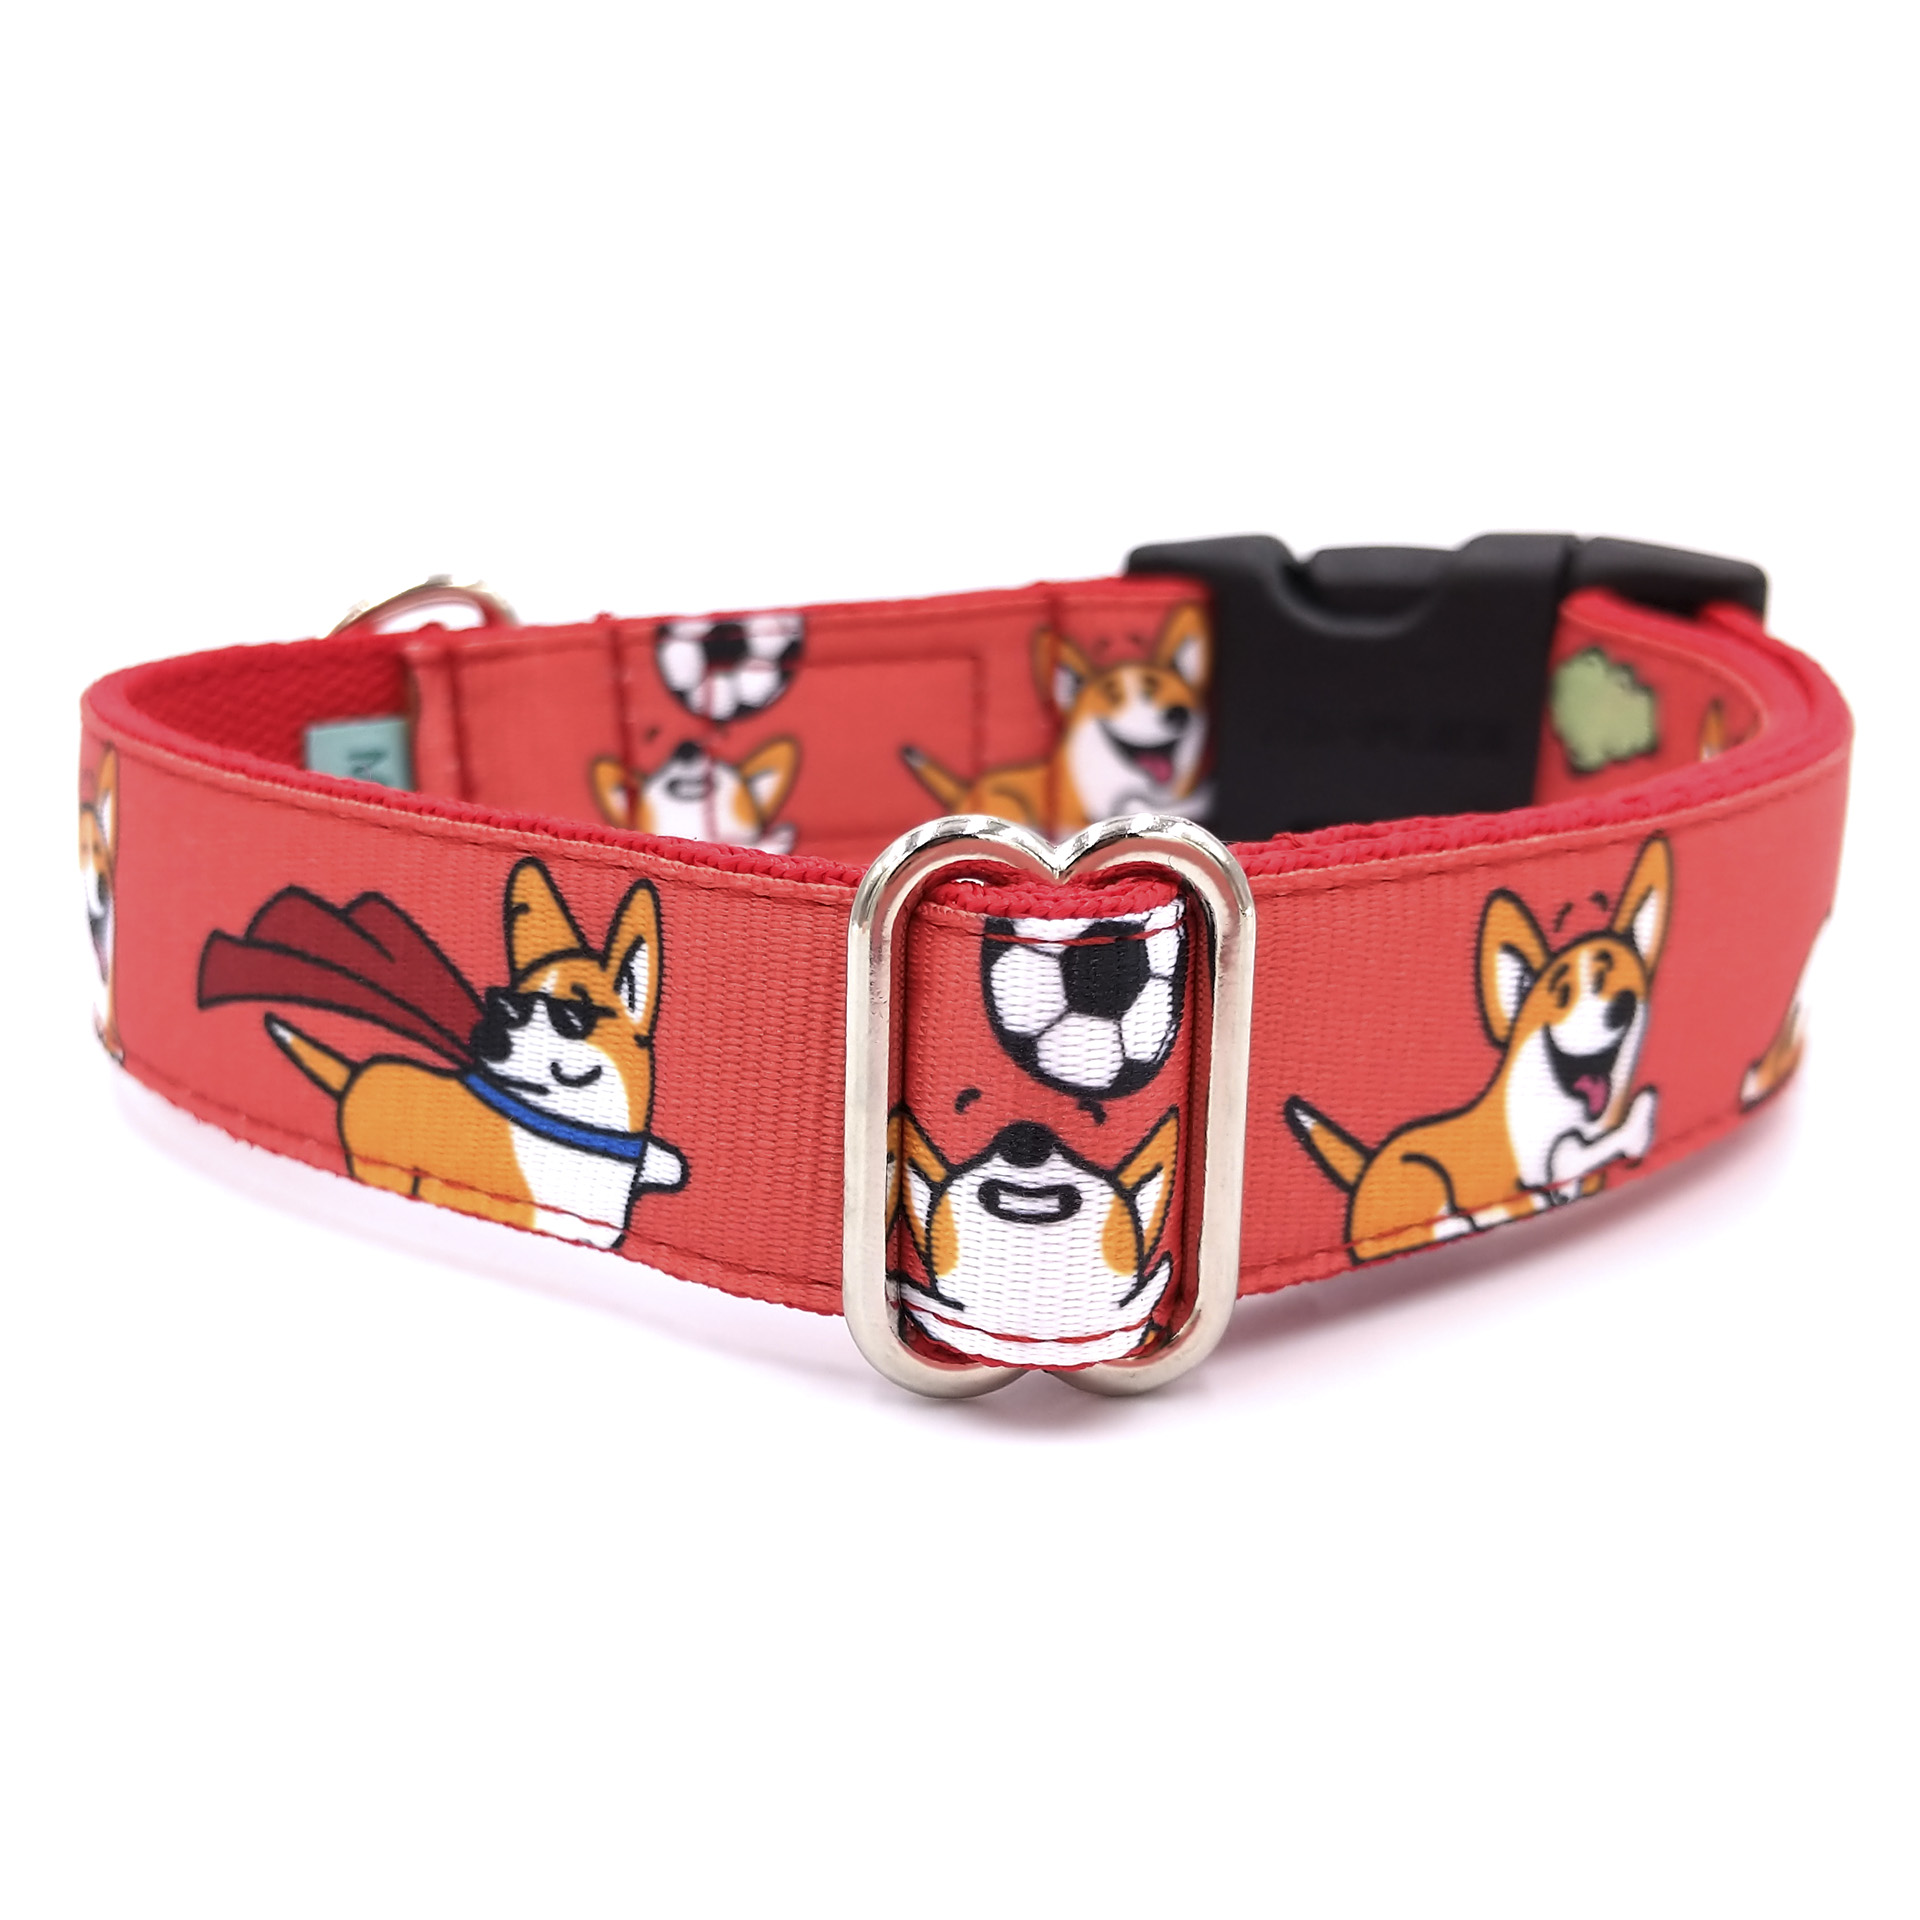 Corgi love dog collar